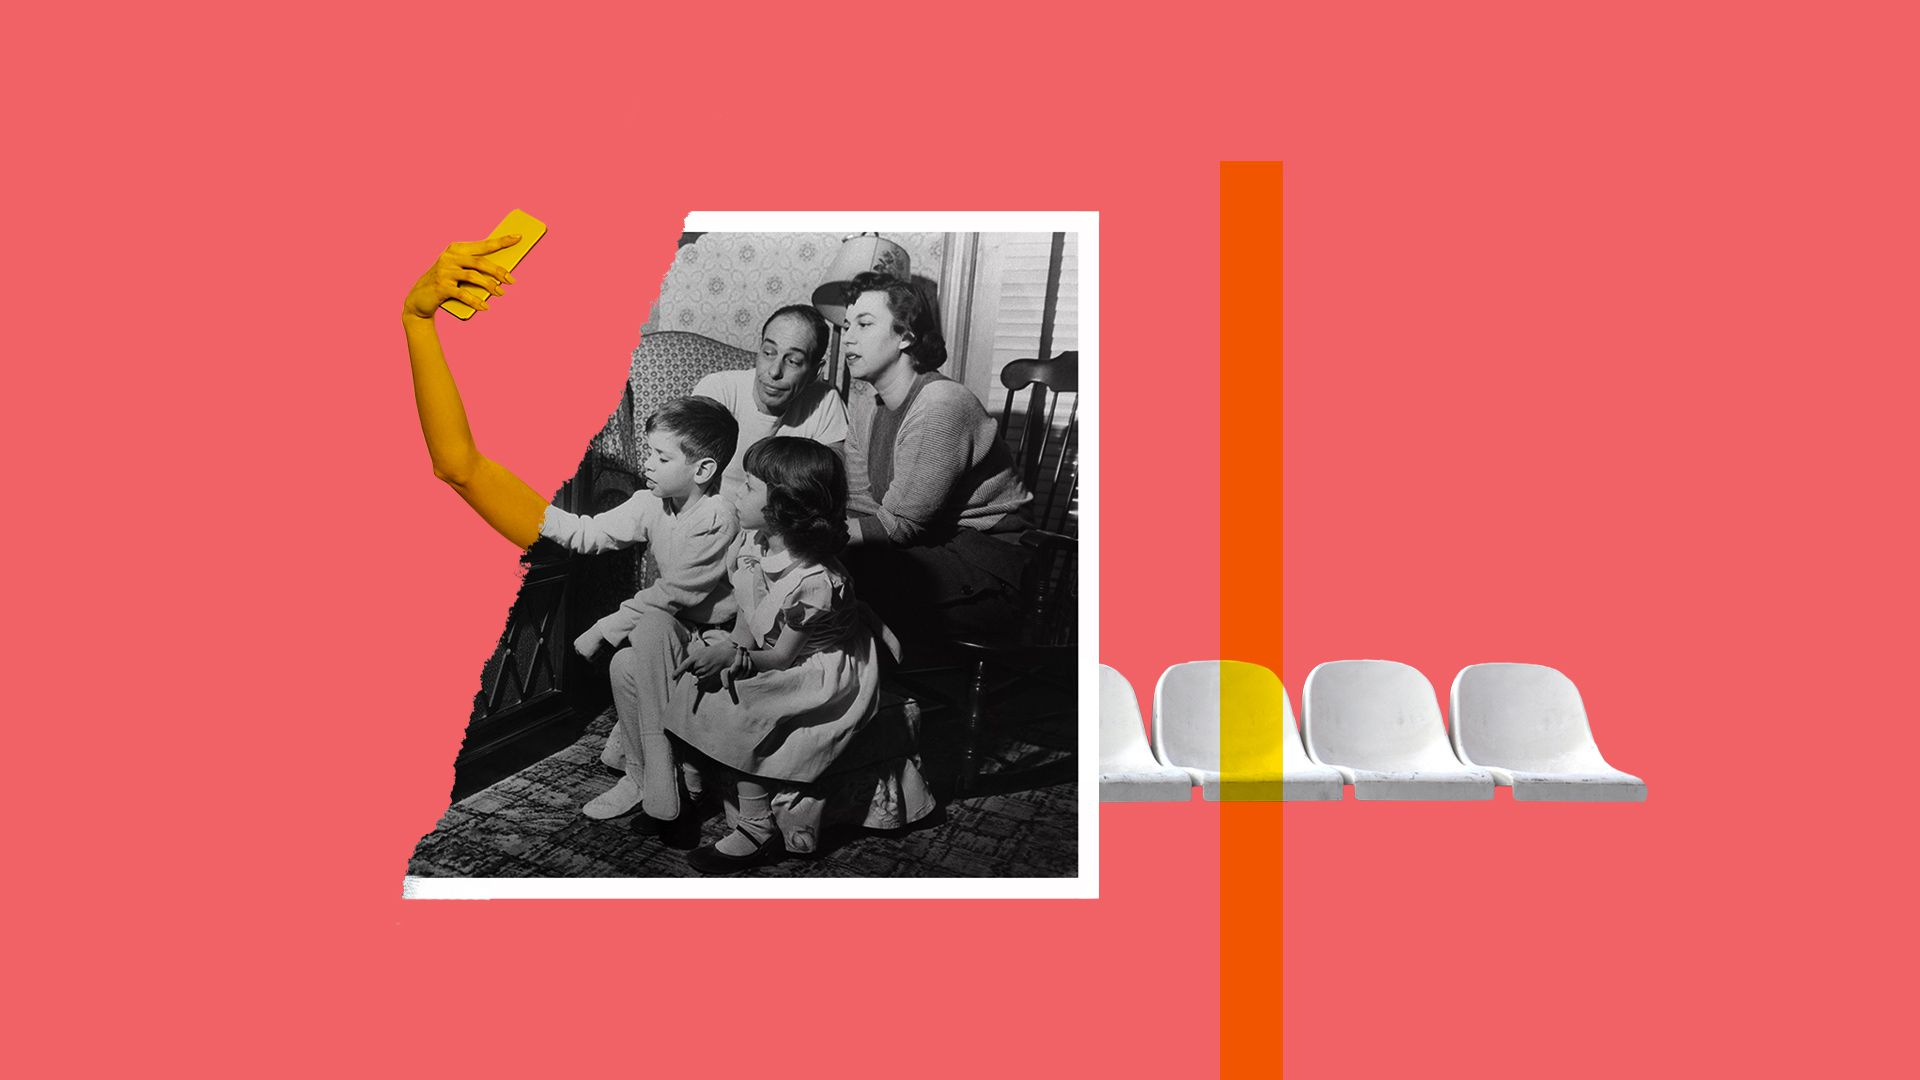 Collage illustration of an arm taking a selfie, laid on top of a torn photograph of a family gathered around a television set. There is a row of empty benches in the background.